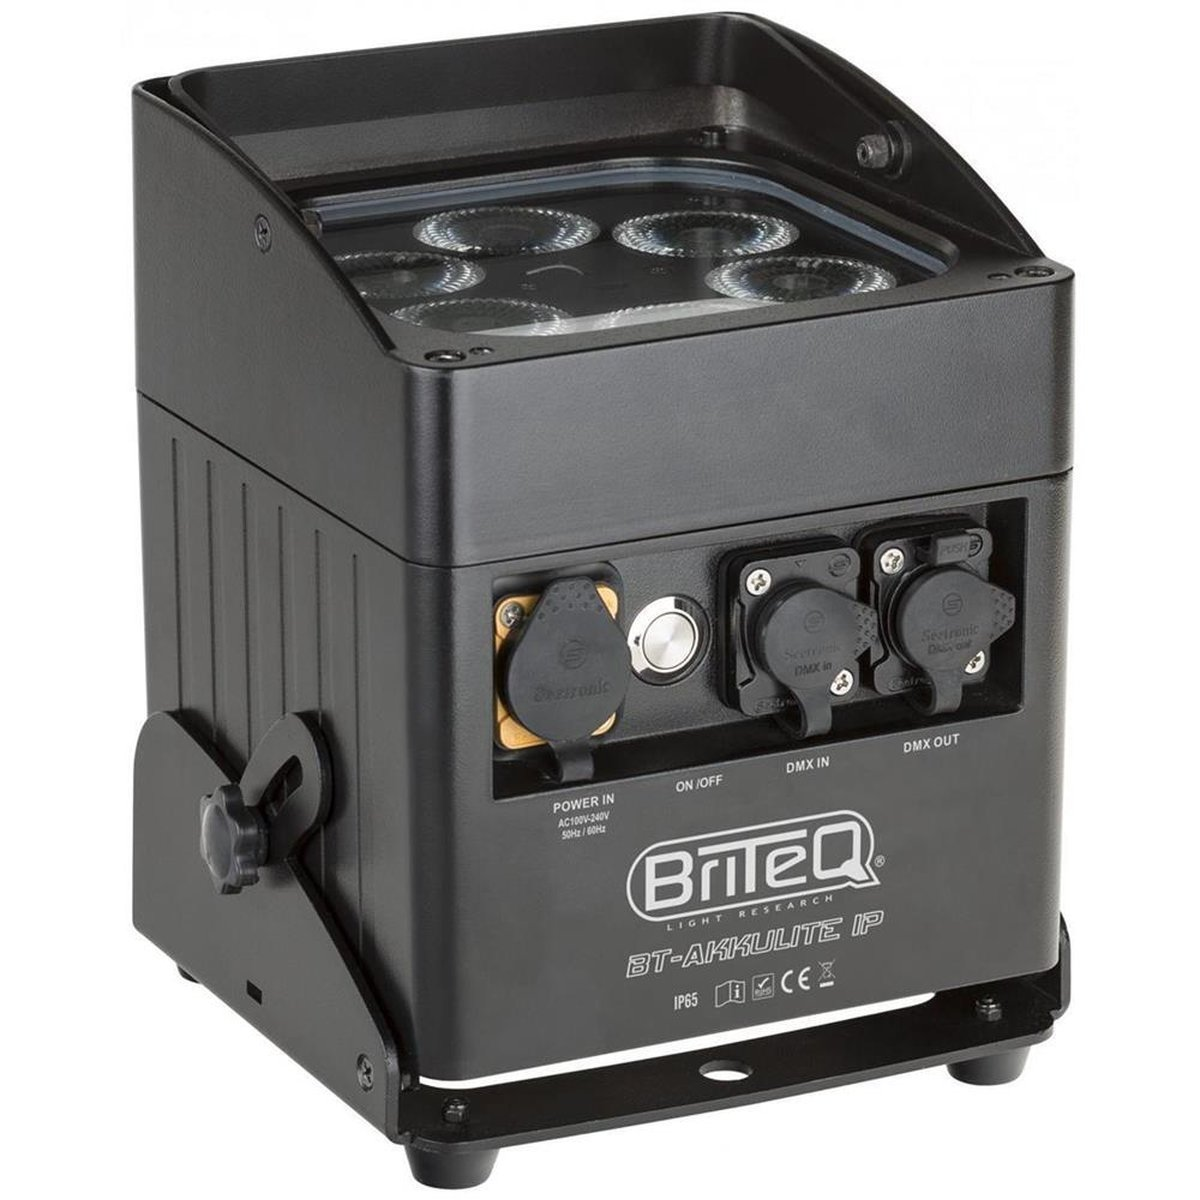 Briteq BT-Akkulite IP, 6x 10 Watt RGBWA-LED